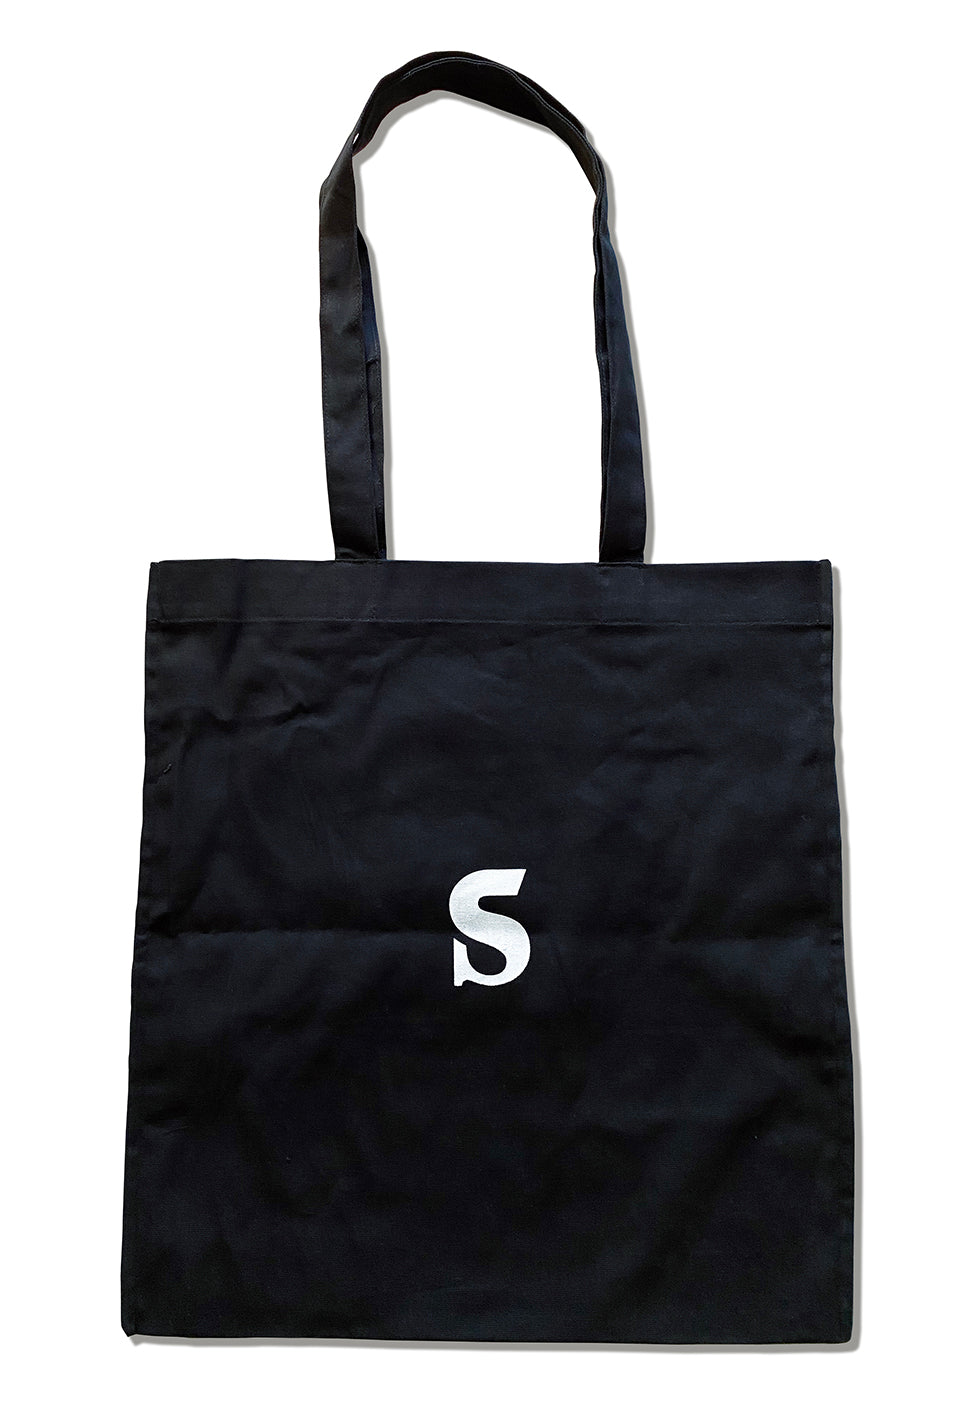 The ''S'' Bag